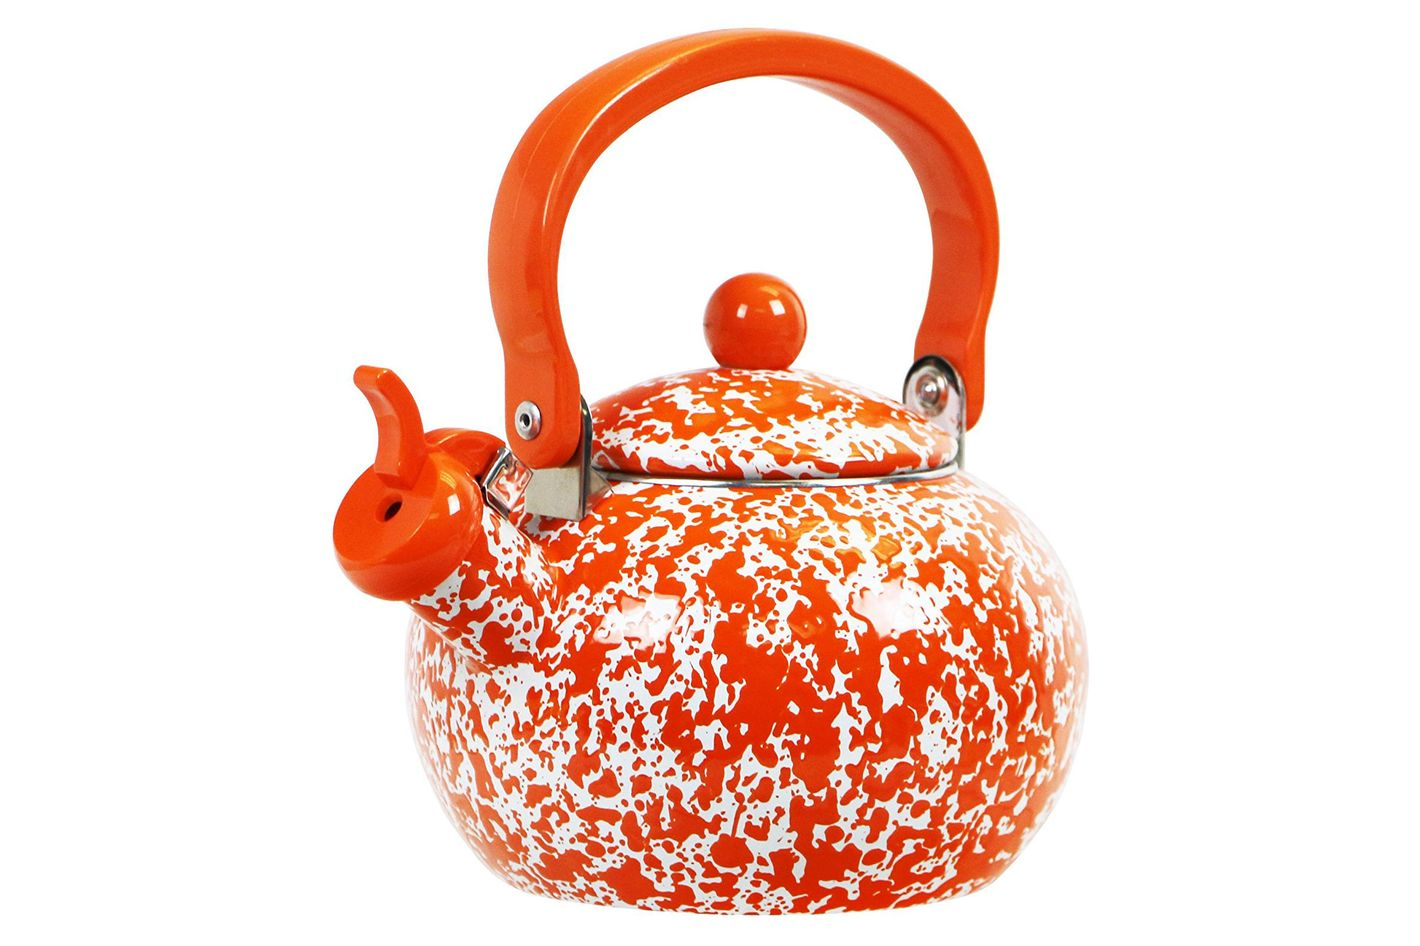 Calypso Basics by Reston Lloyd Whistling Teakettle, 2-Quart, Orange Marble